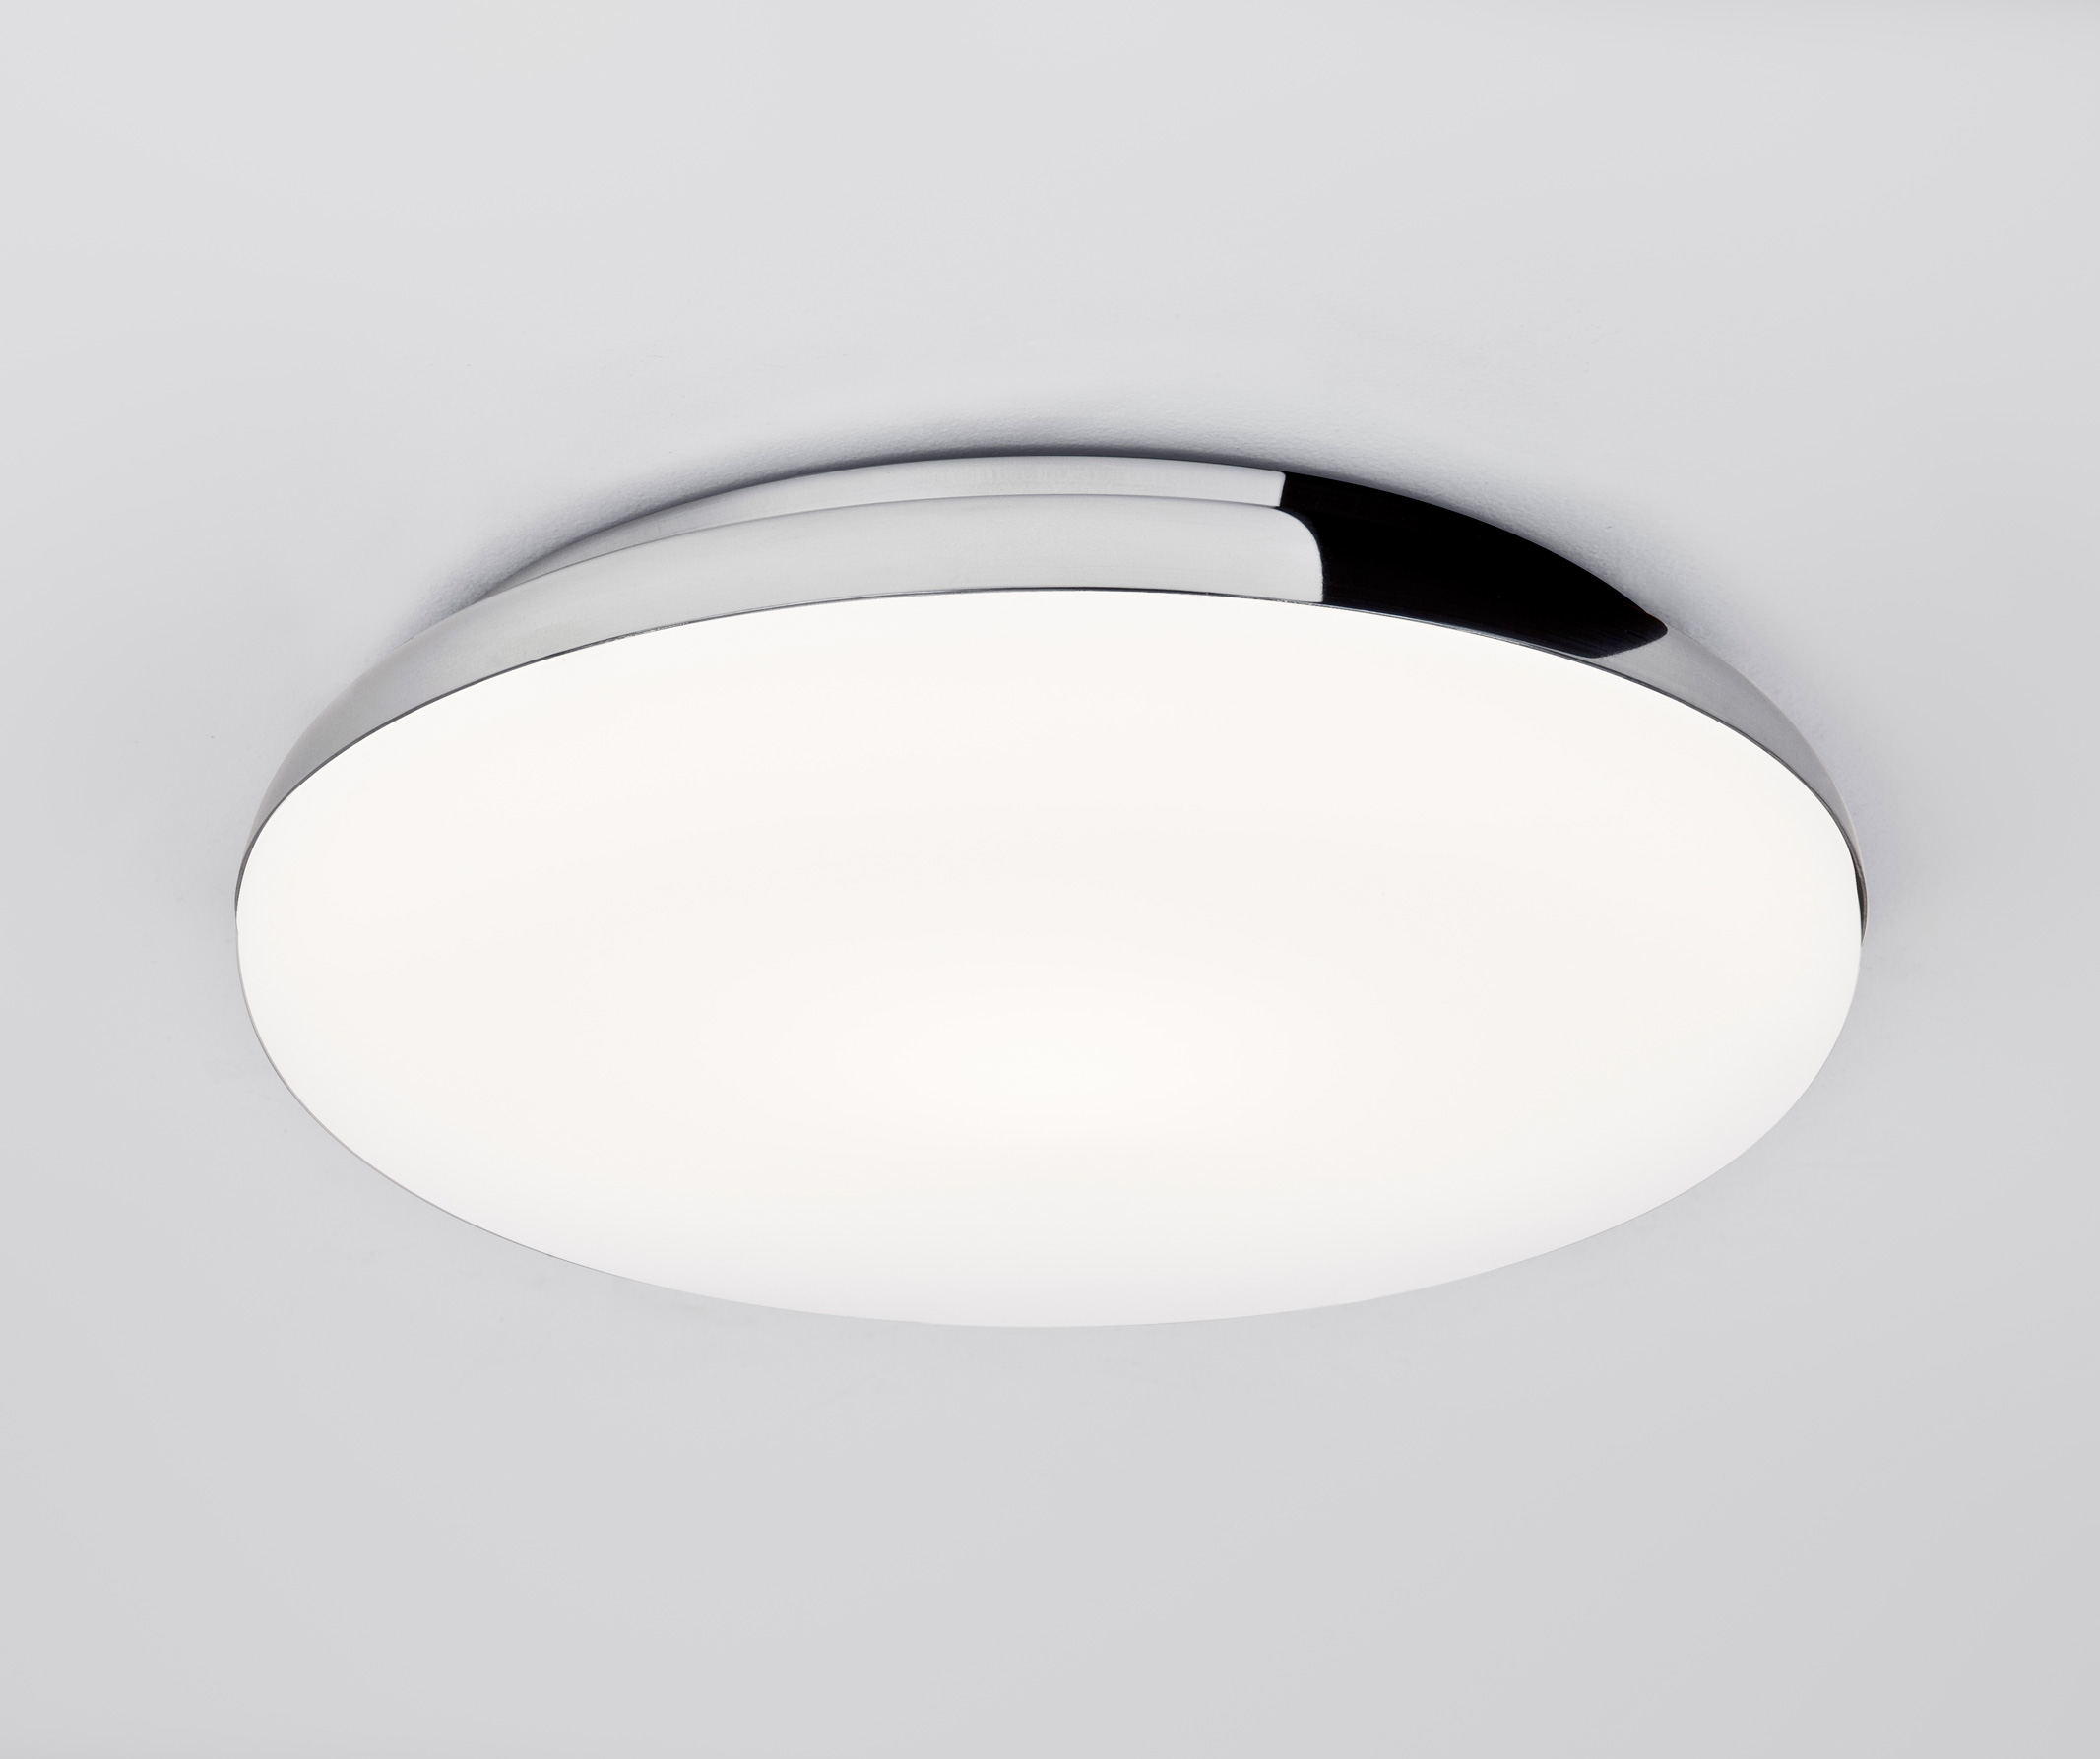 Astro Altea Bathroom 0586 round glass bathroom ceiling light 60W E27 IP44 chrome Thumbnail 1